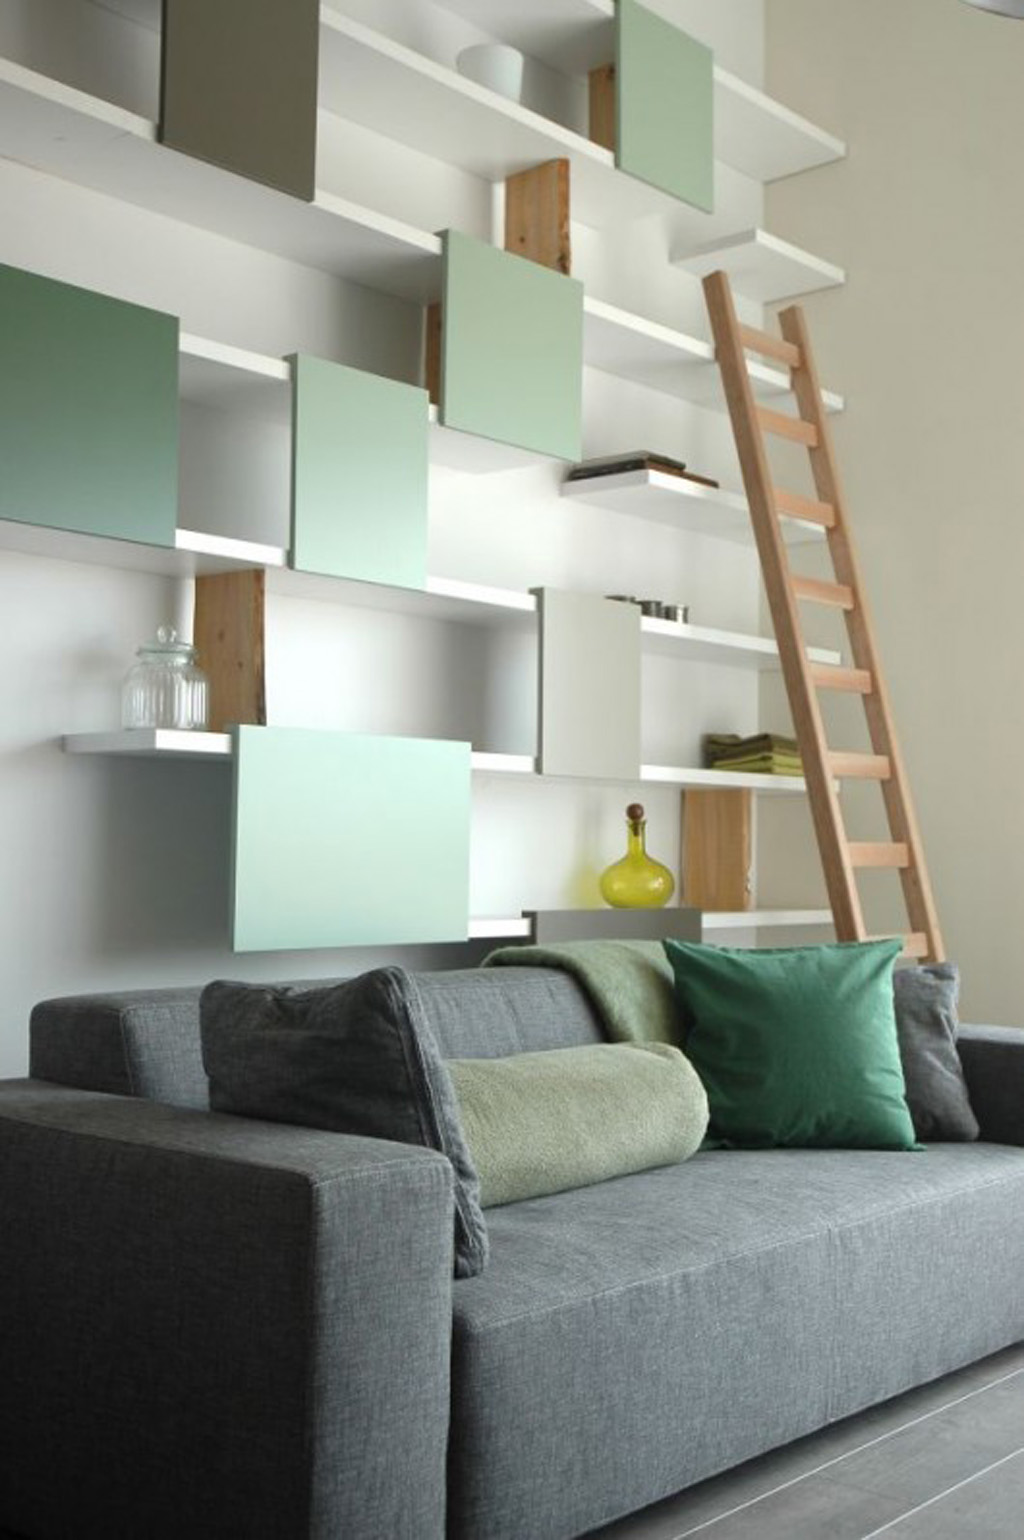 Wohnzimmer Regal Hinter Sofa Contemporary Wall Shelf Designs - Iroonie.com